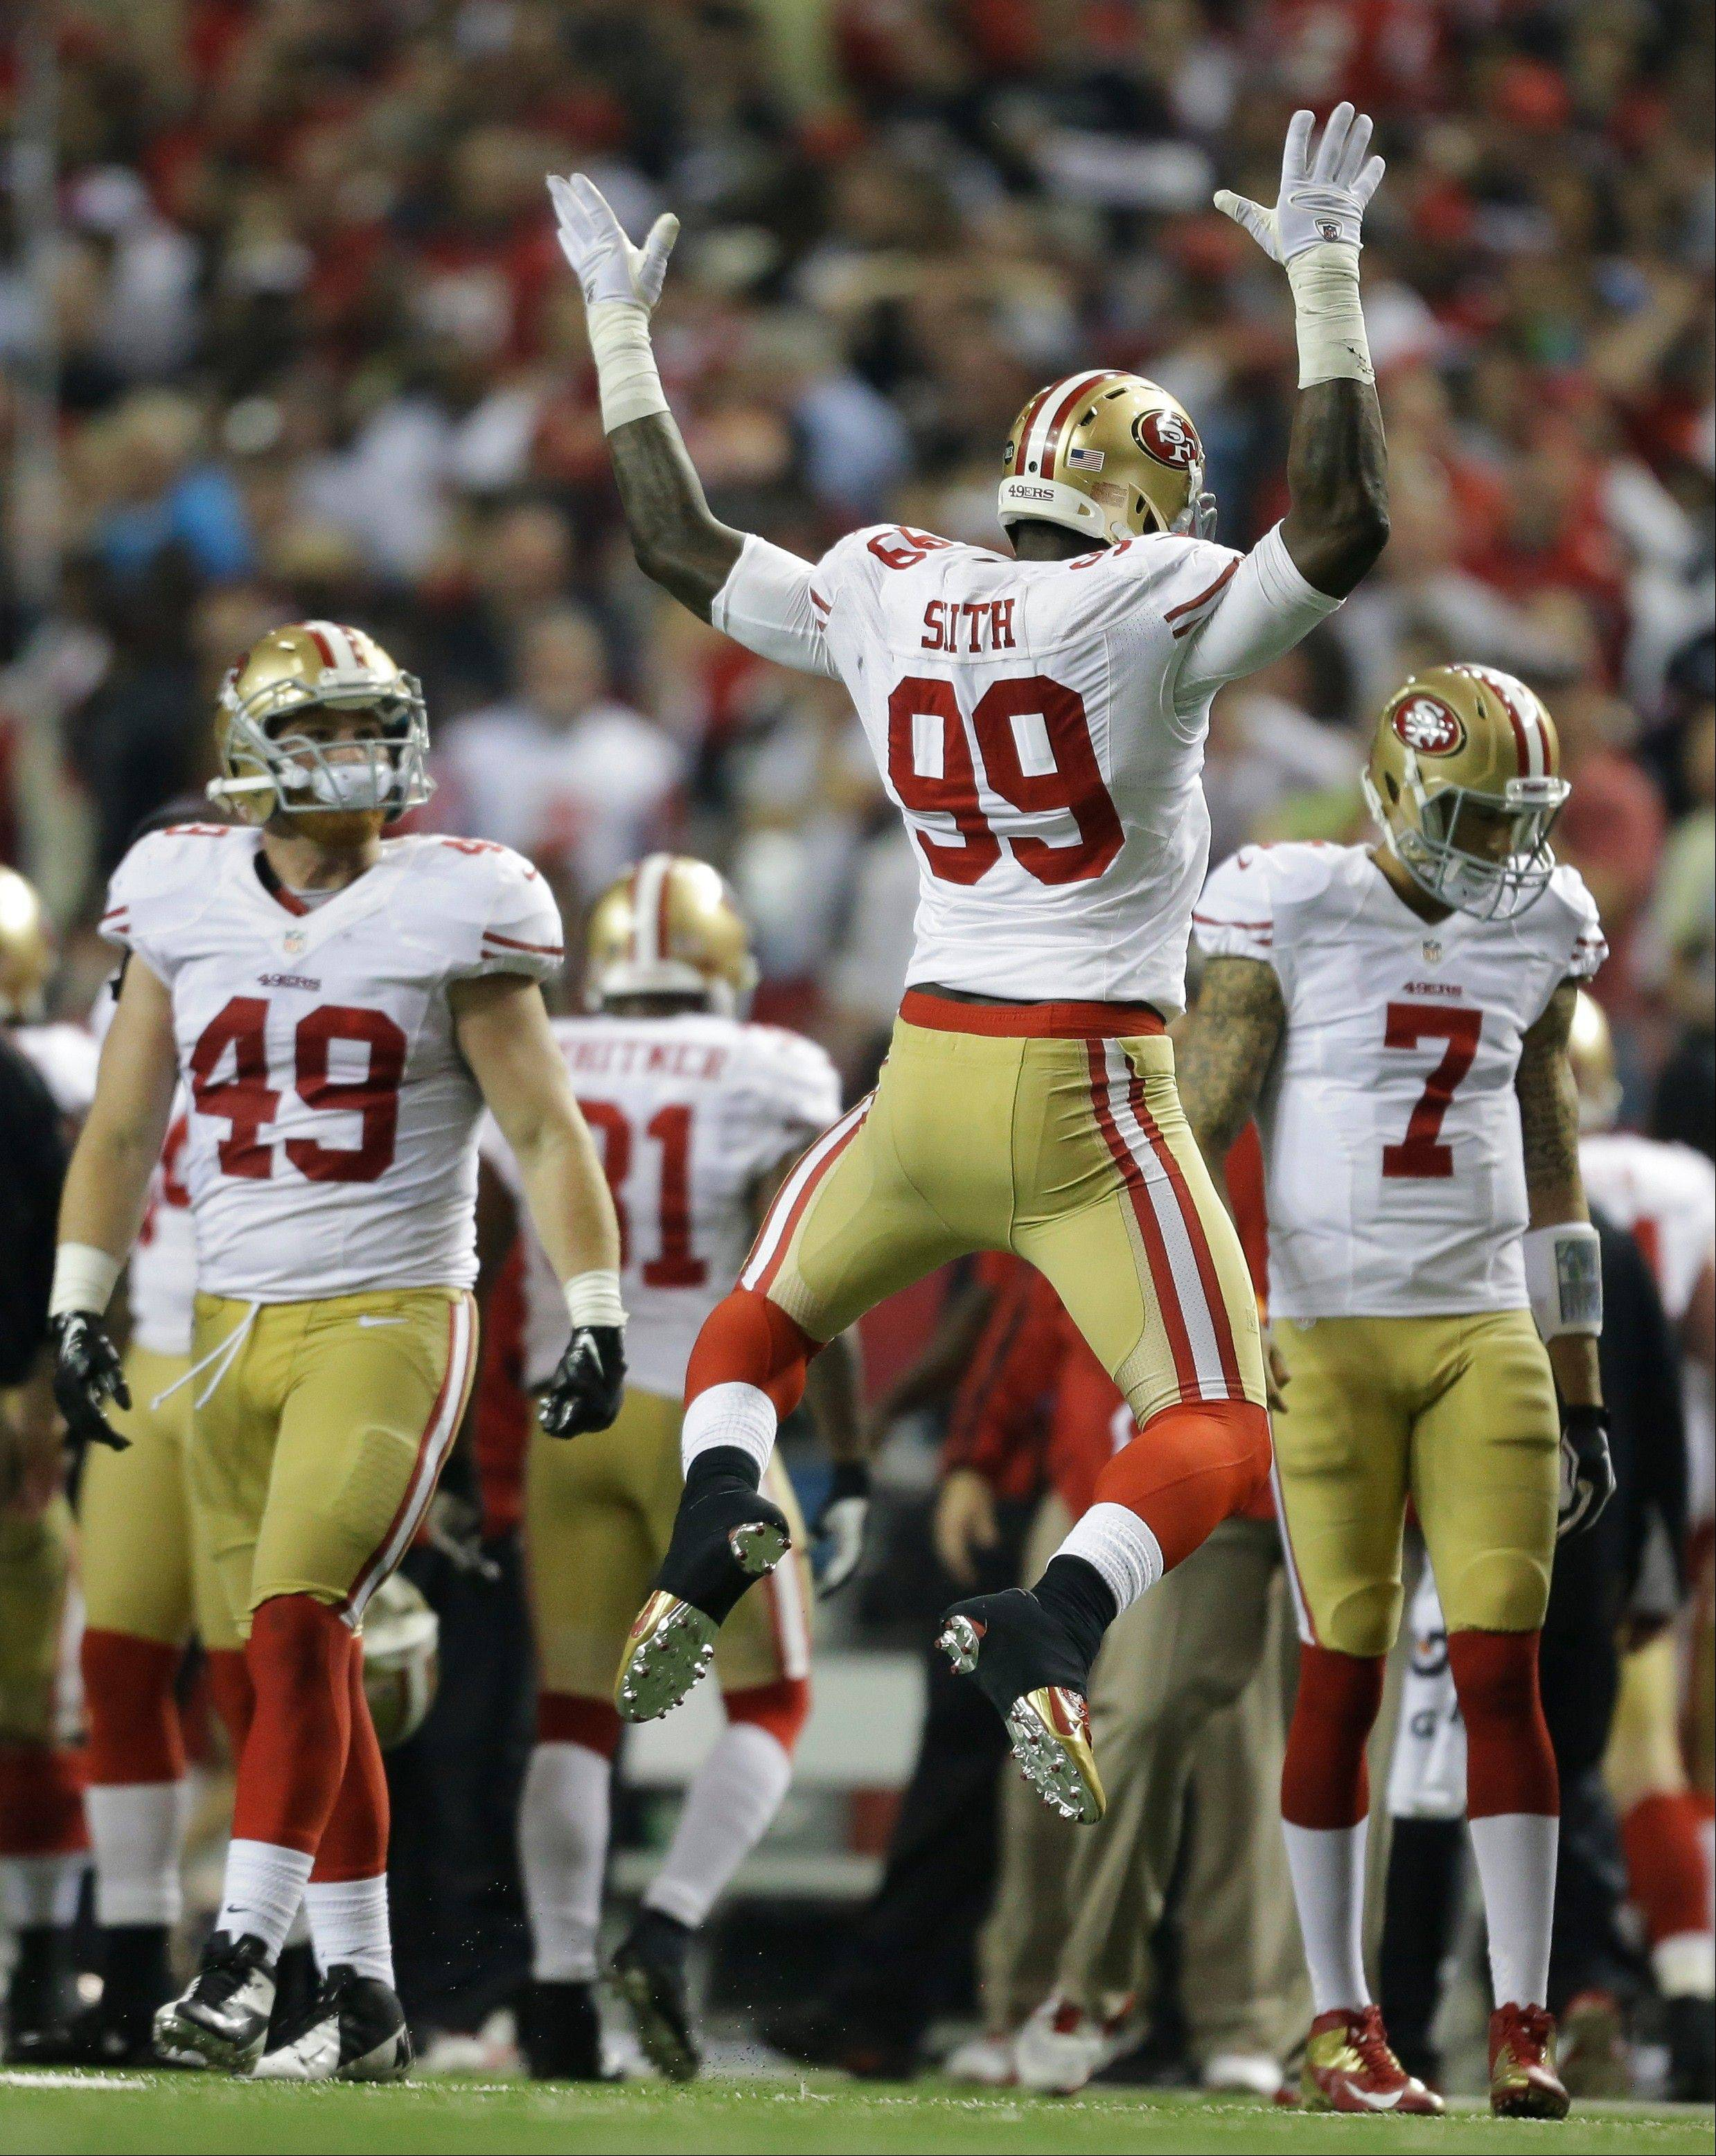 San Francisco 49ers defender Aldon Smith reacts after recovering a fumble during the second half of the NFL football NFC Championship game against the Atlanta Falcons Sunday, Jan. 20, 2013, in Atlanta.